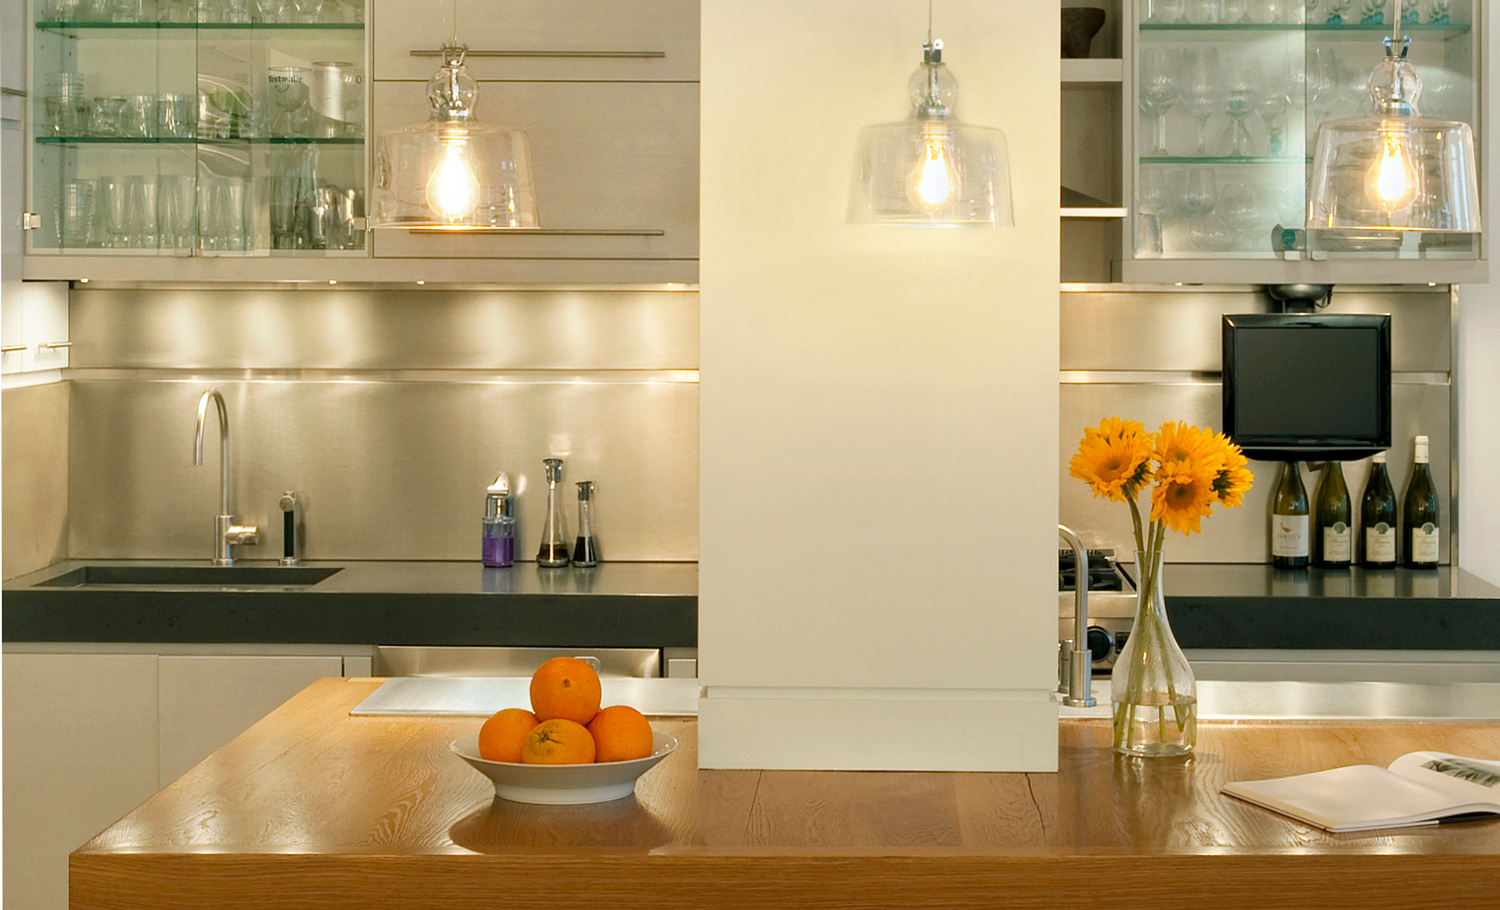 new-york-architect-loft-kitchen4.jpg